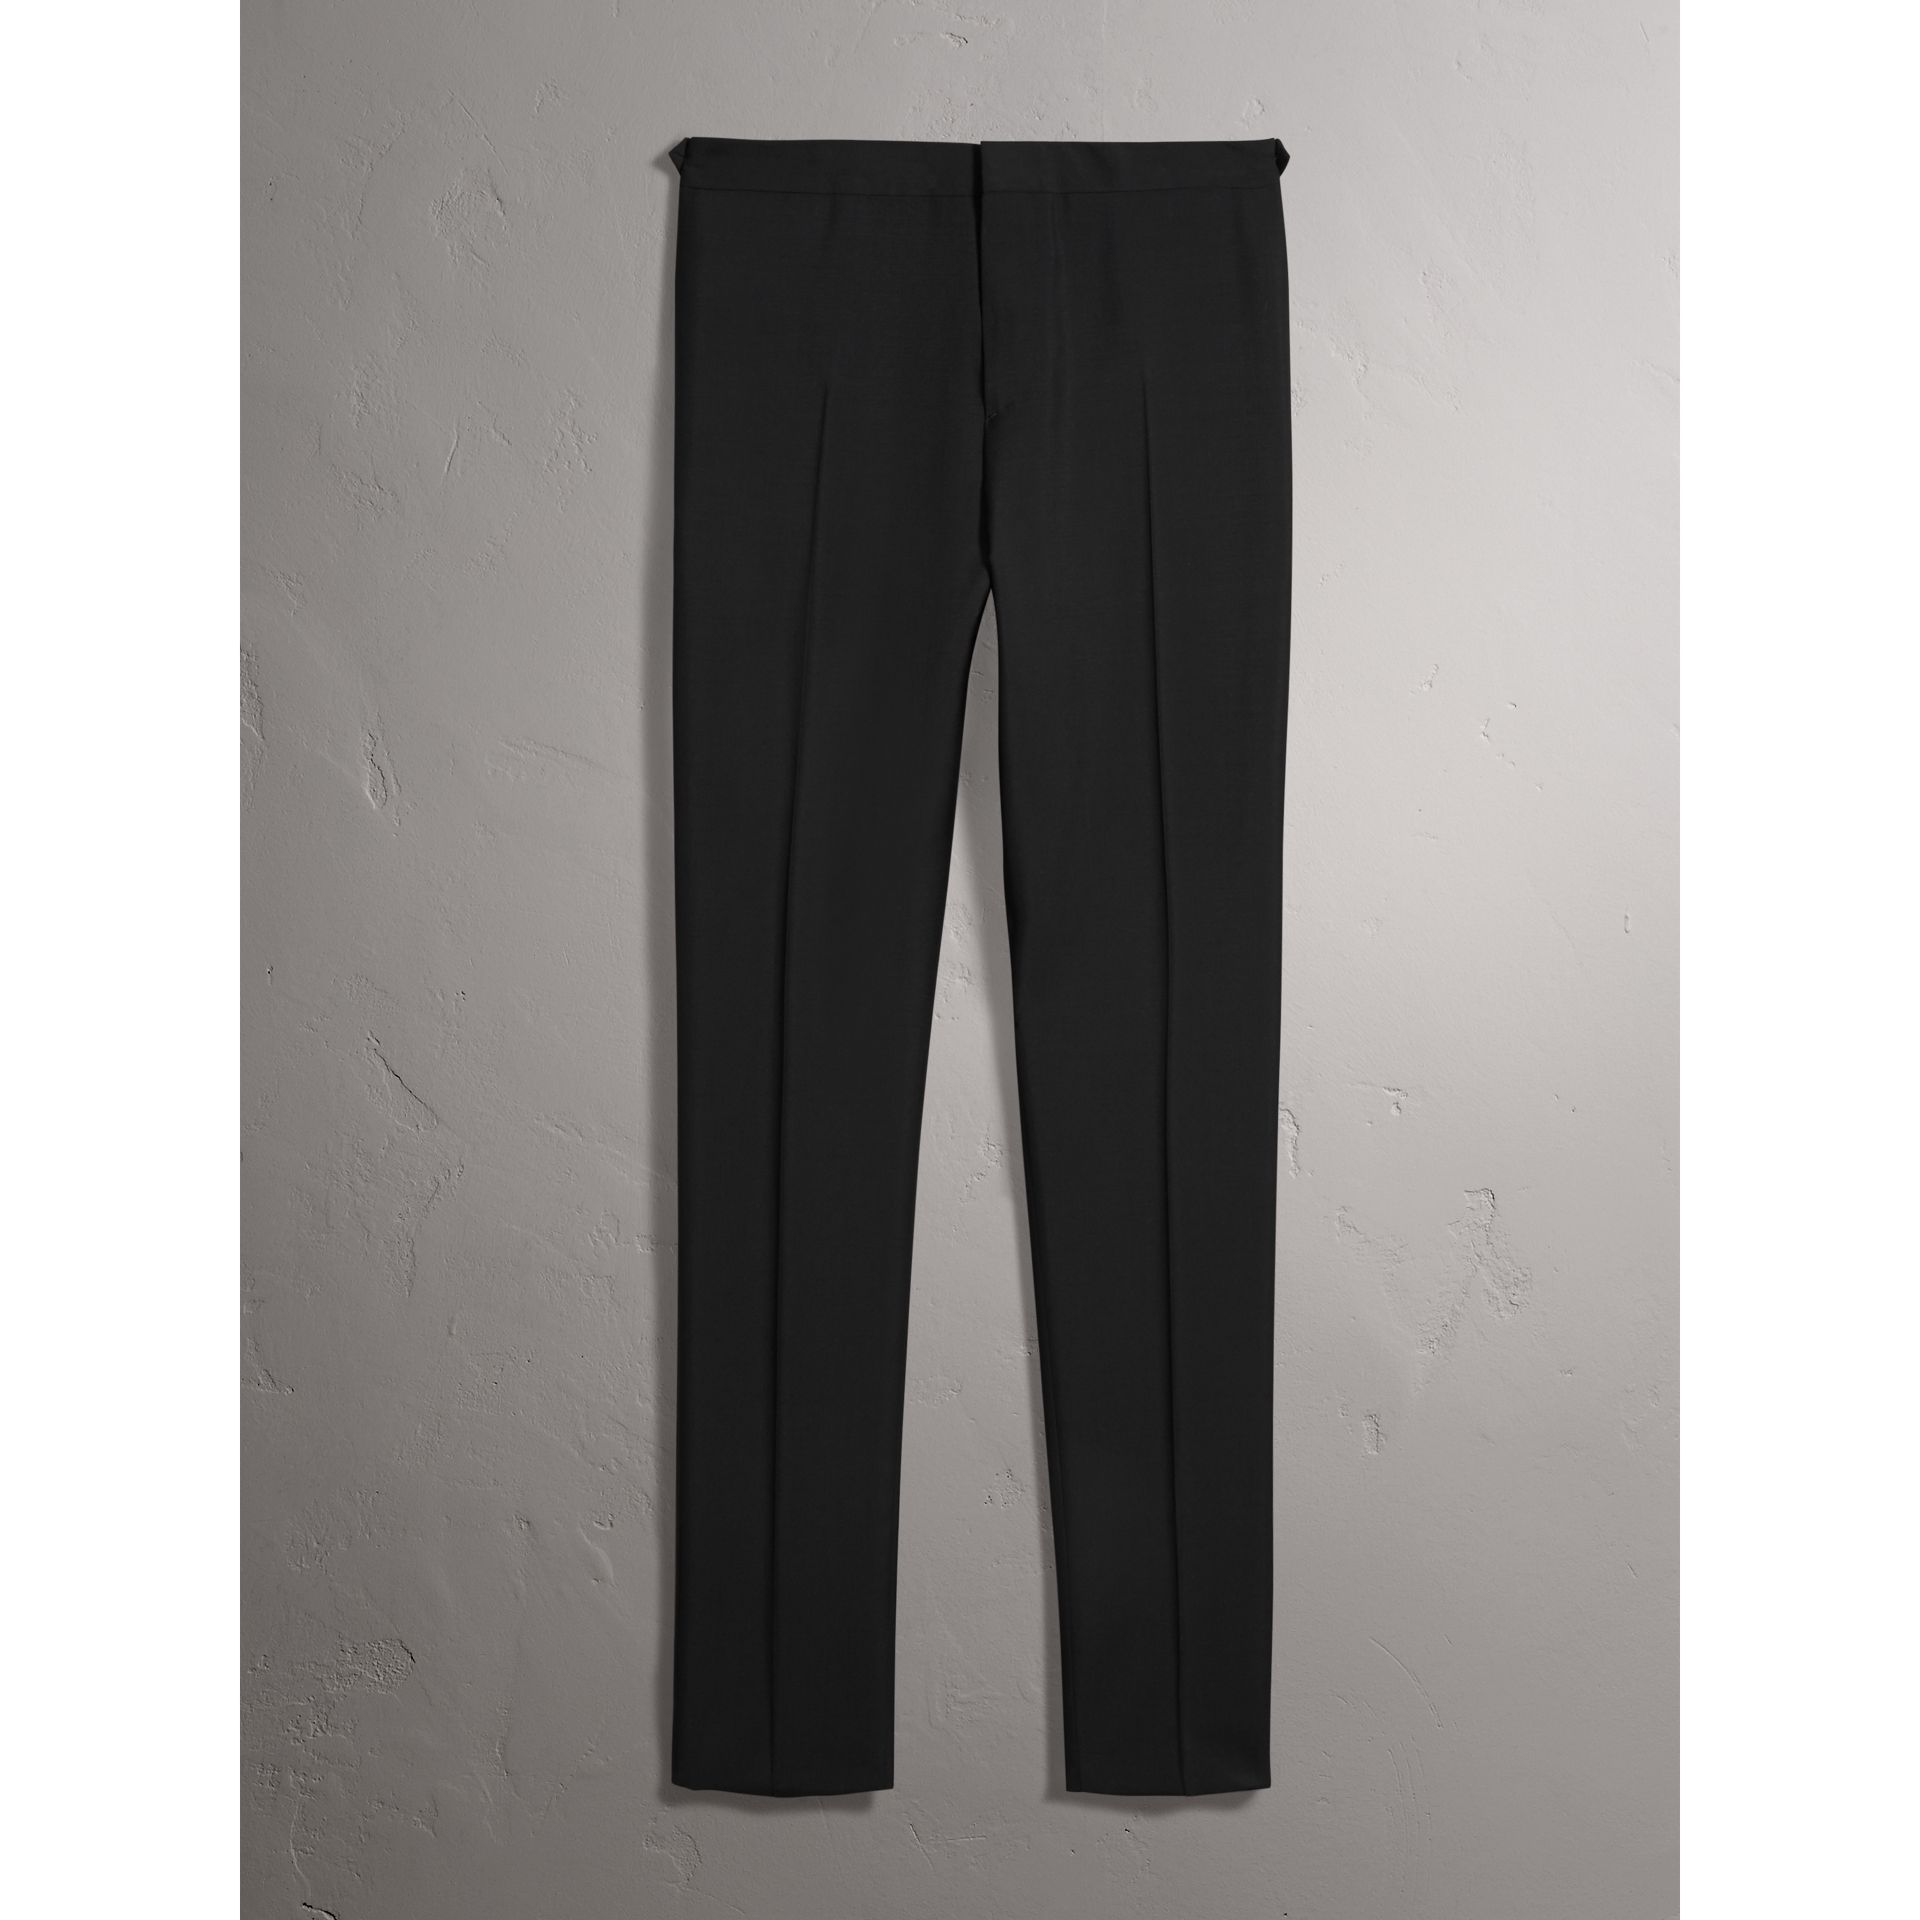 Burberry Black Slim Fit Wool Mohair Evening Trousers